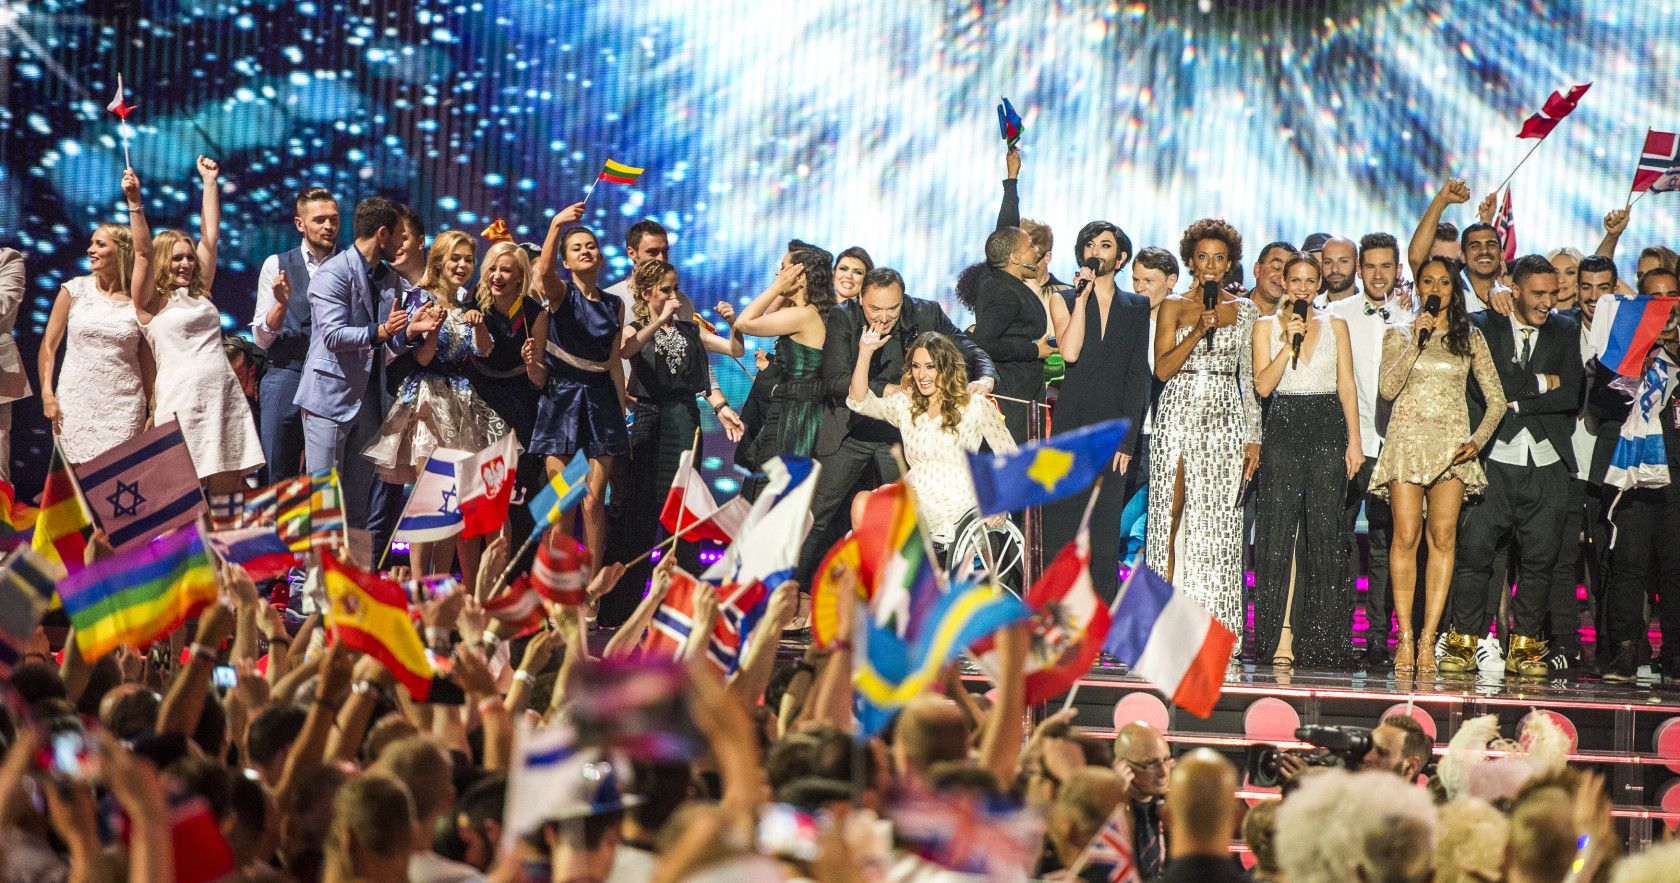 The second Semi-Final winners on stage